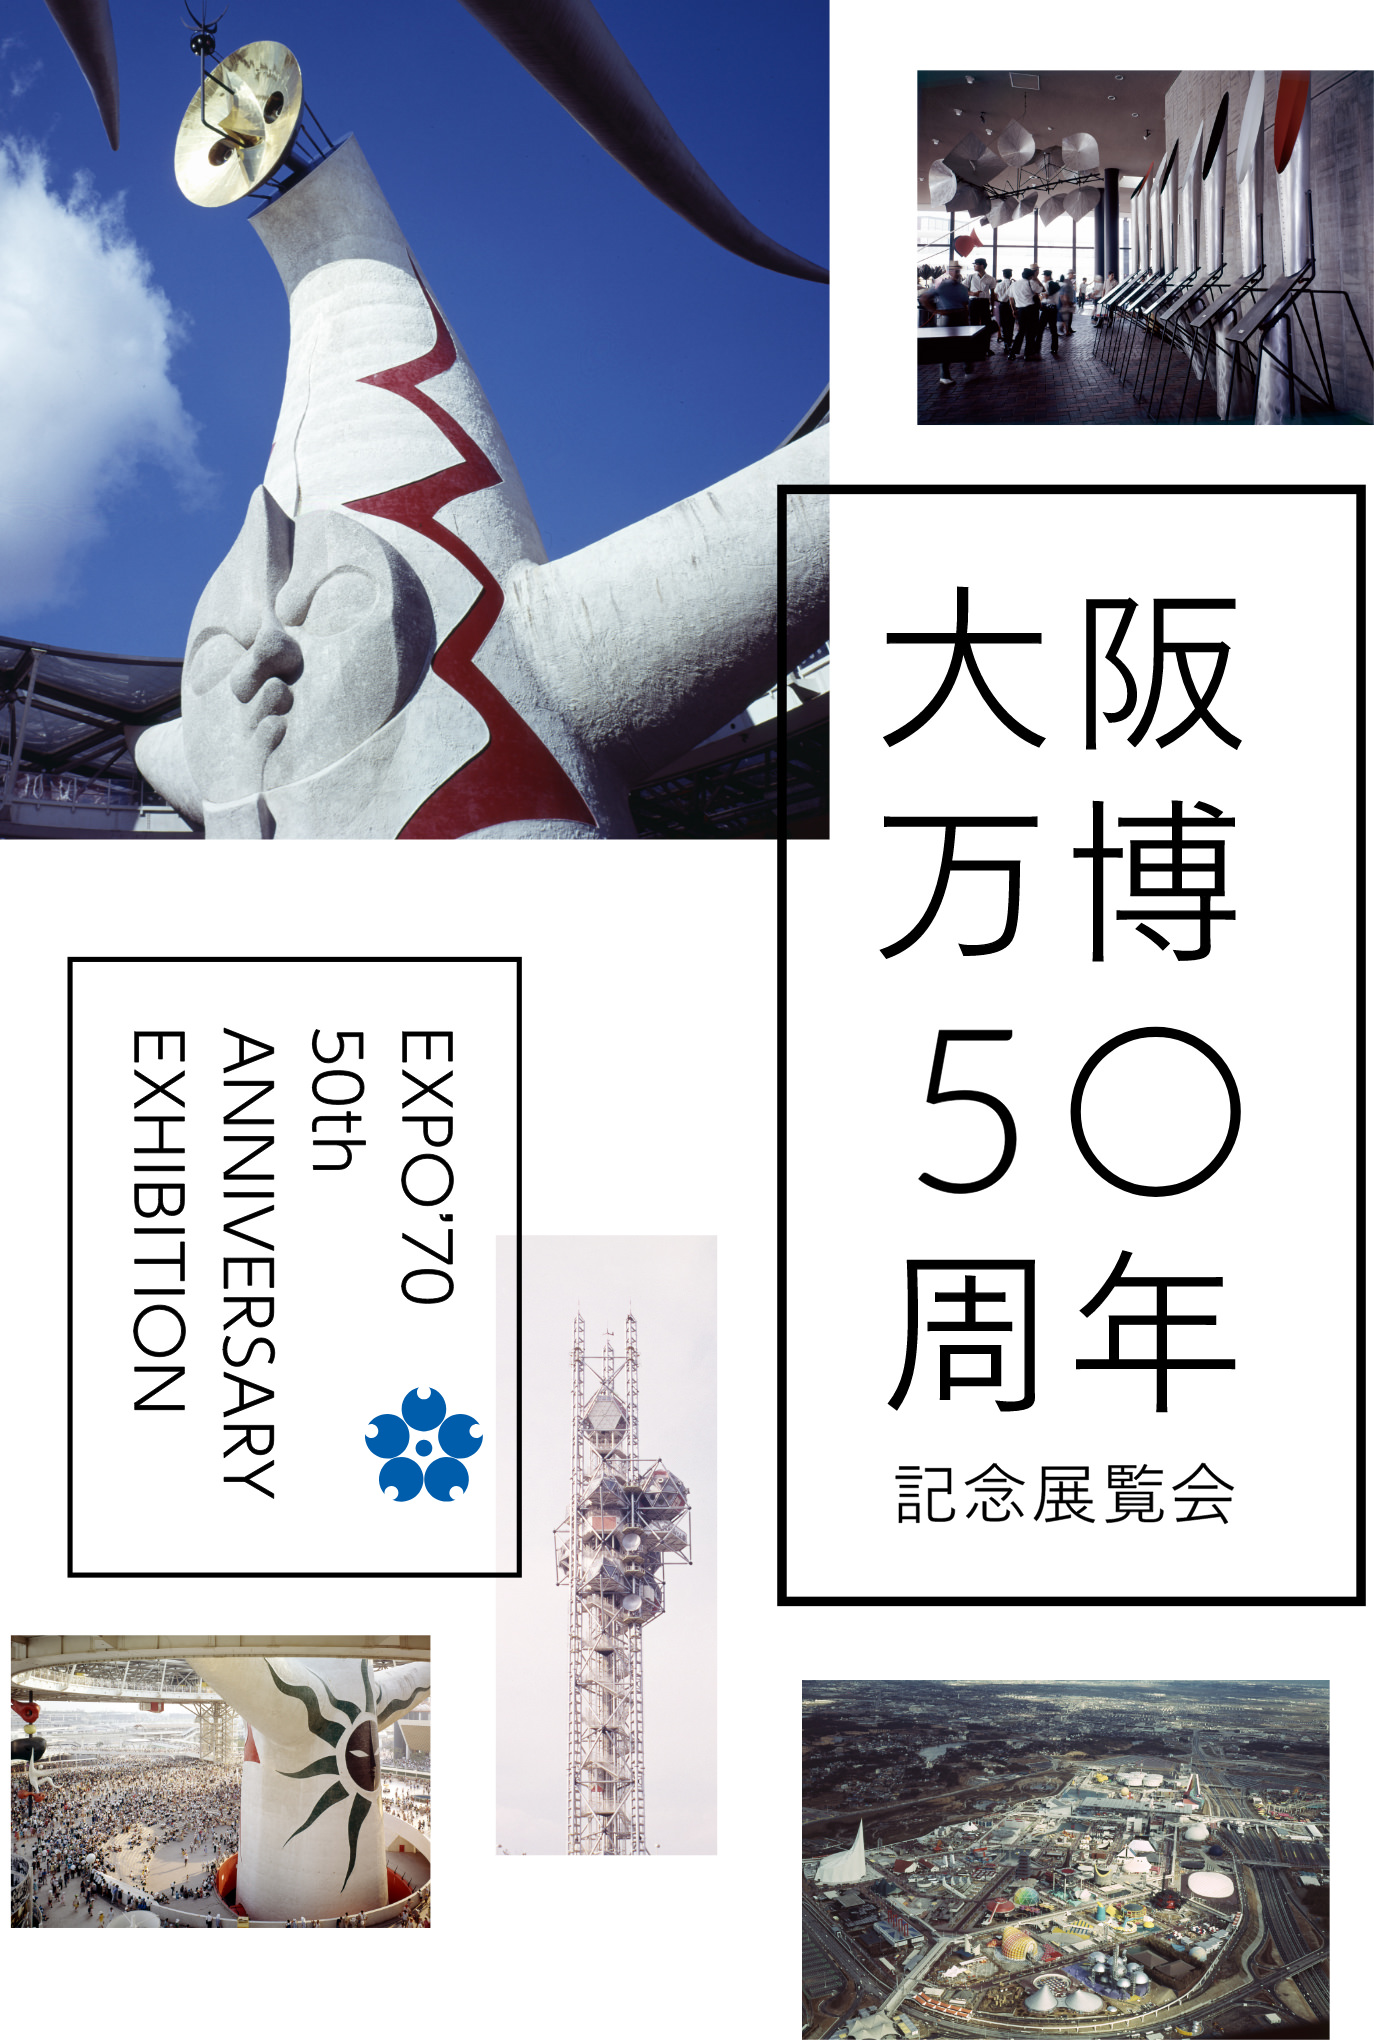 EXPO '70 50TH ANNIVERSARY SPECIAL EXHIBITION